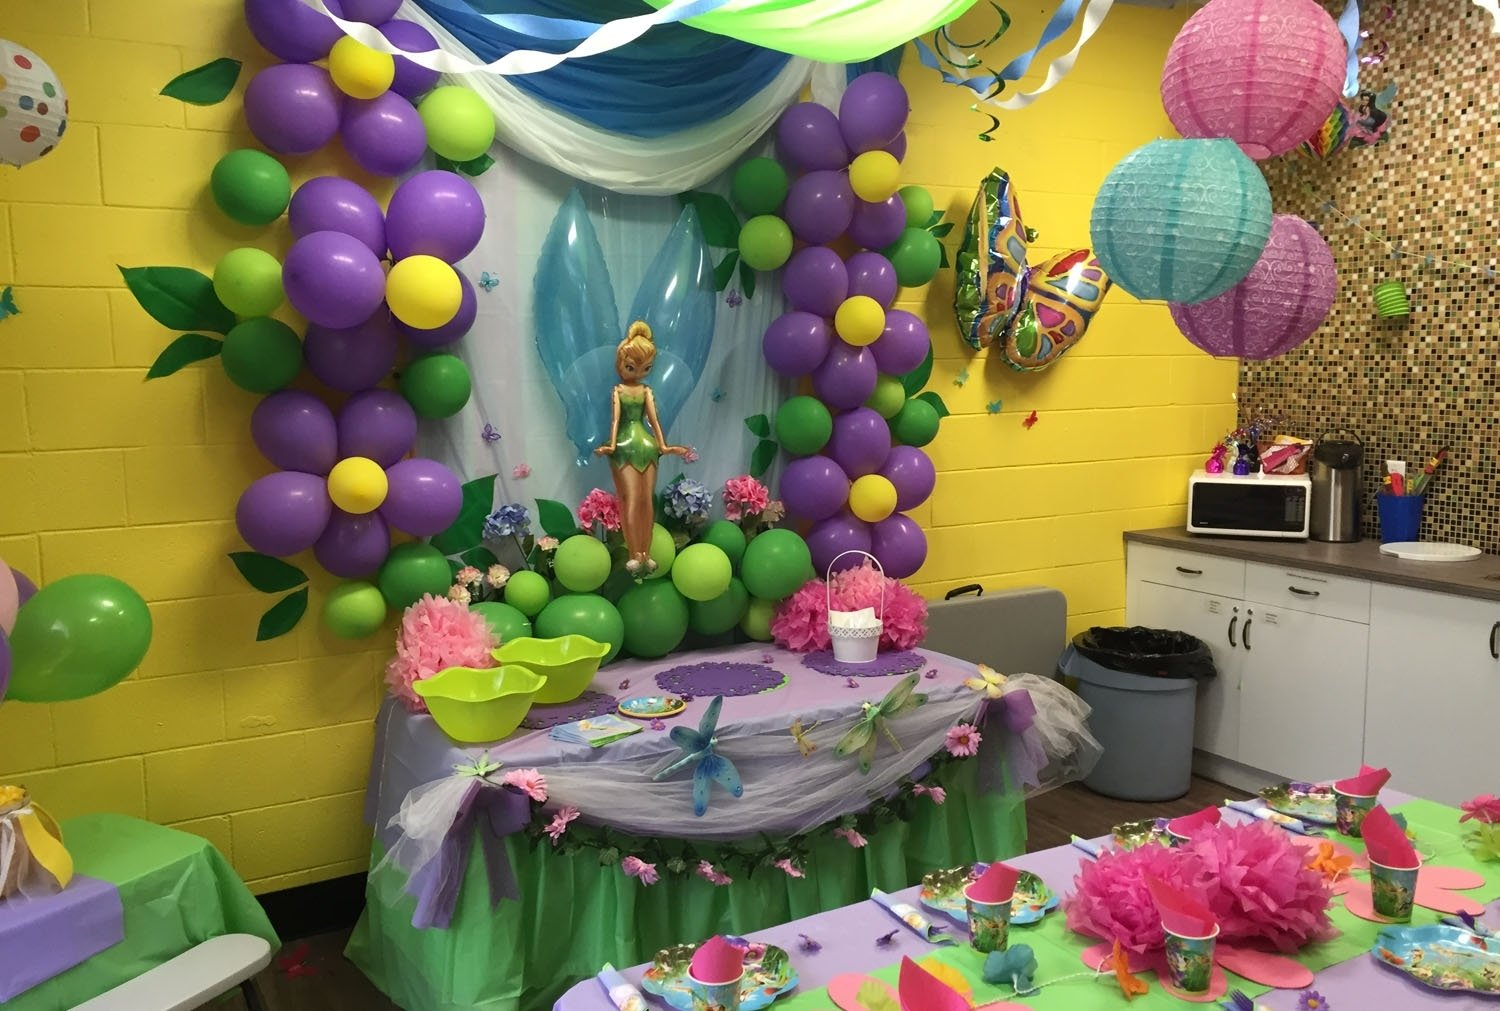 10 Nice Ideas For Kids Birthday Party kelownas best kids birthday parties indoor playground jump2it 2021